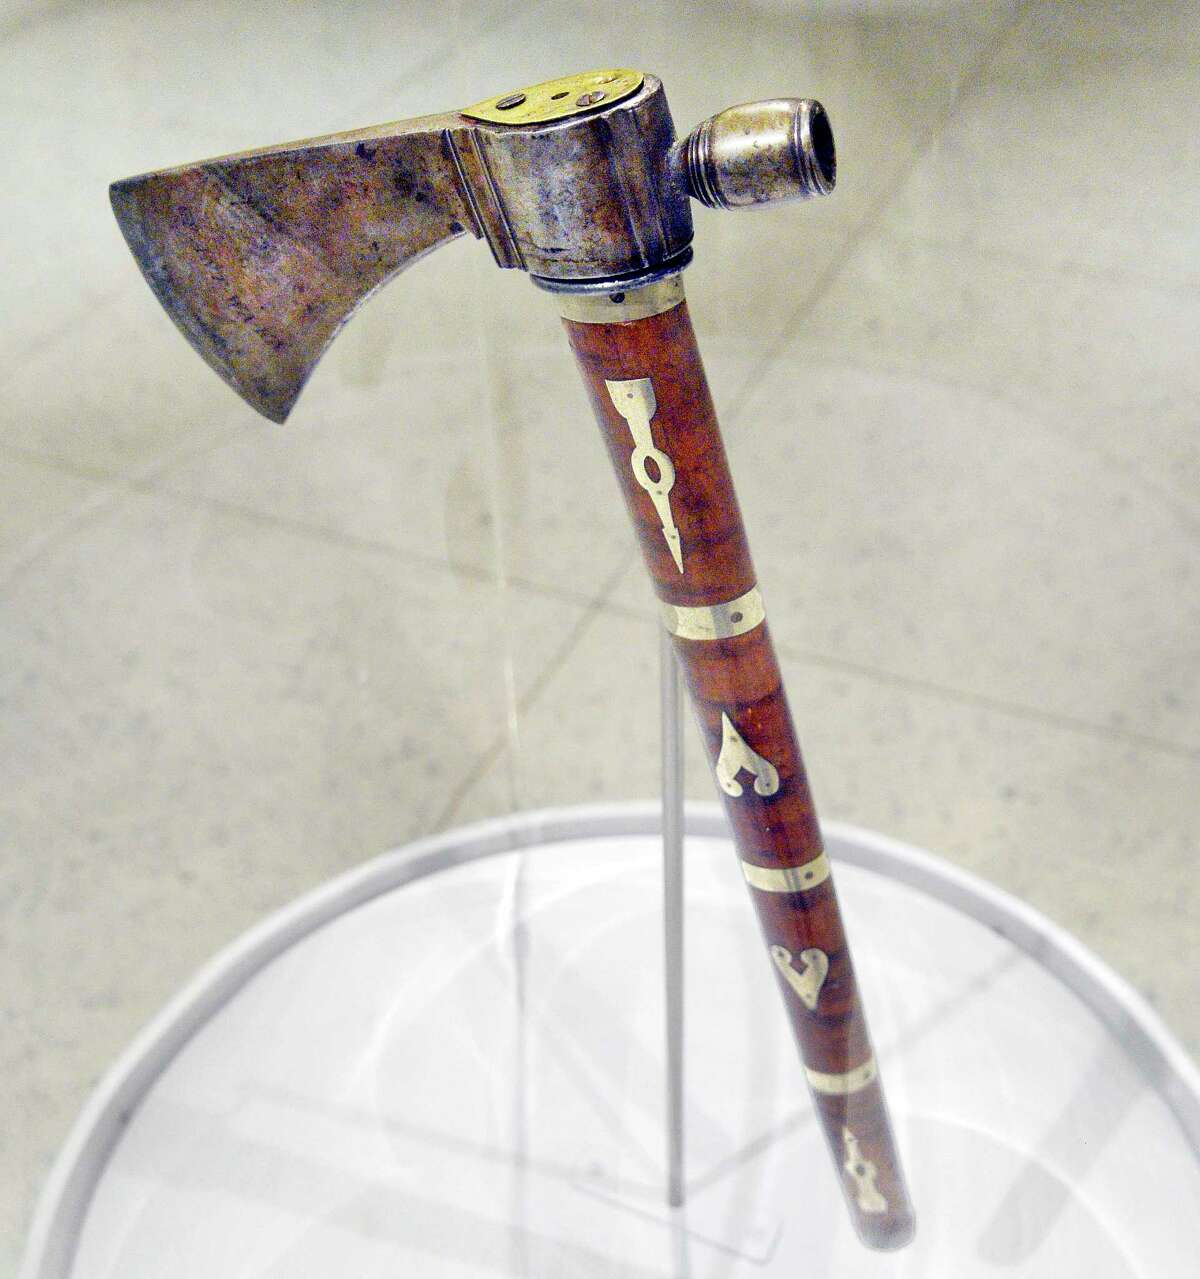 An 18th-century Native American tomahawk gifted to Cornplanter, the respected Seneca leader, by President George Washington in 1792 on exhibit at the NYS Museum Tuesday July 17, 2018 in Albany, NY. Thanks to the generosity of an anonymous collector, the pipe tomahawk was returned to the State Museum's collections last month. (John Carl D'Annibale/Times Union)